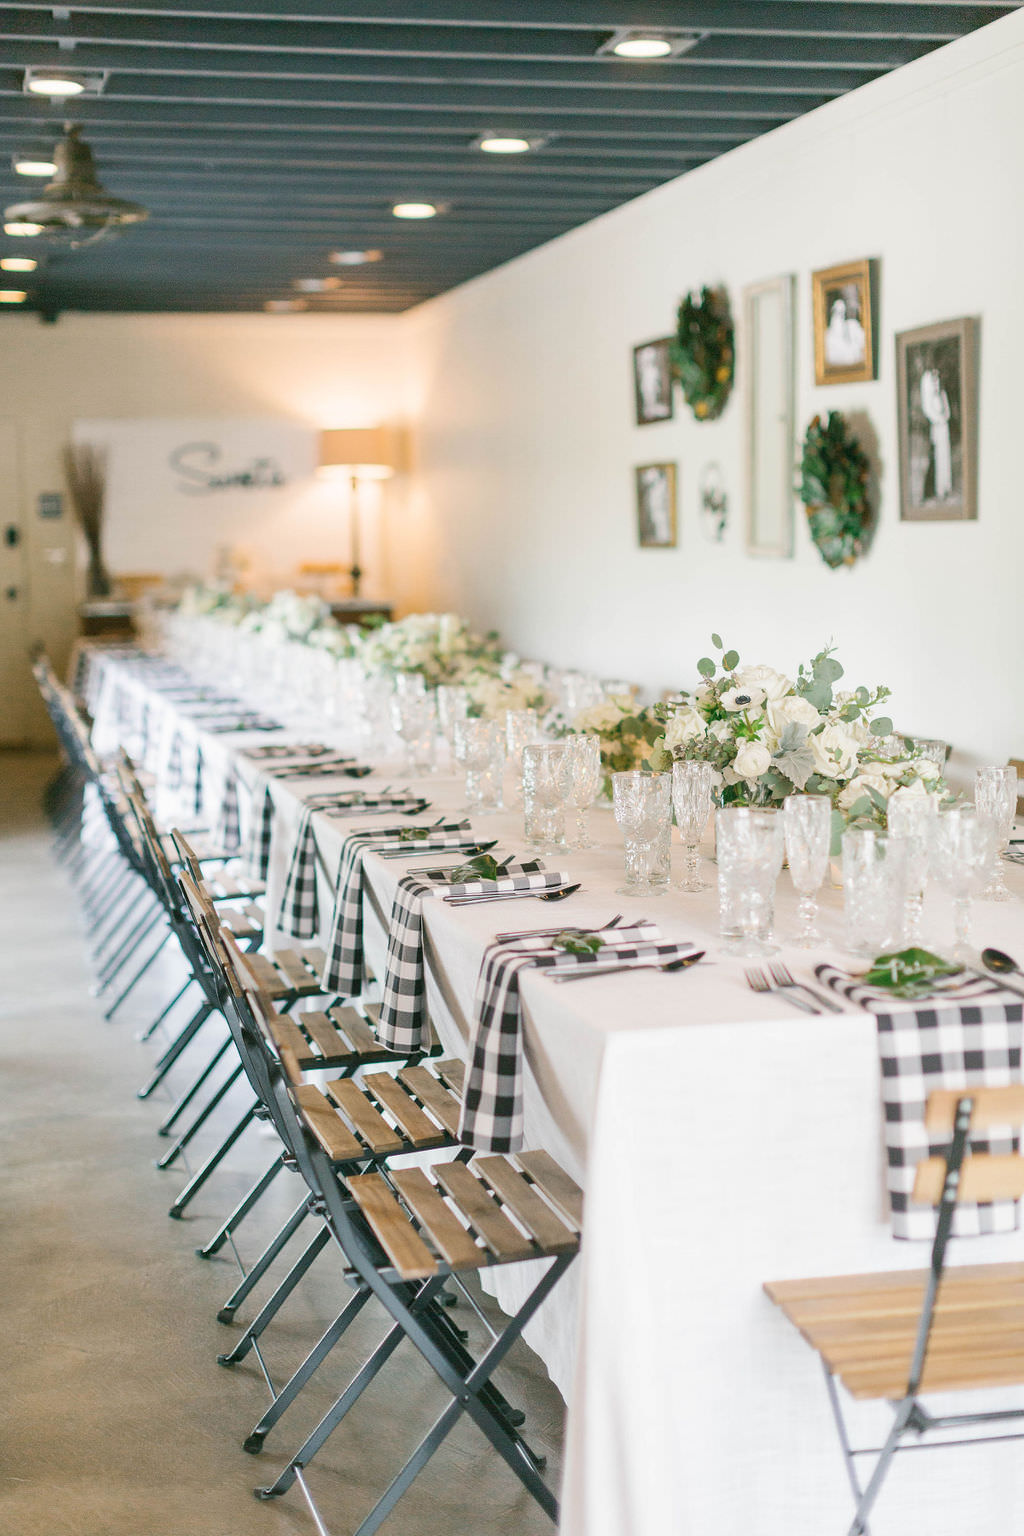 Southern Inspired Magnolia Market Bridal Shower with Buffalo Plaid Linen Accents and Rustic Decor | Bruce Wayne Florals | A Chair Affair | Over the Top Rental Linens | Parties A'La Carte Wedding and Event Planner